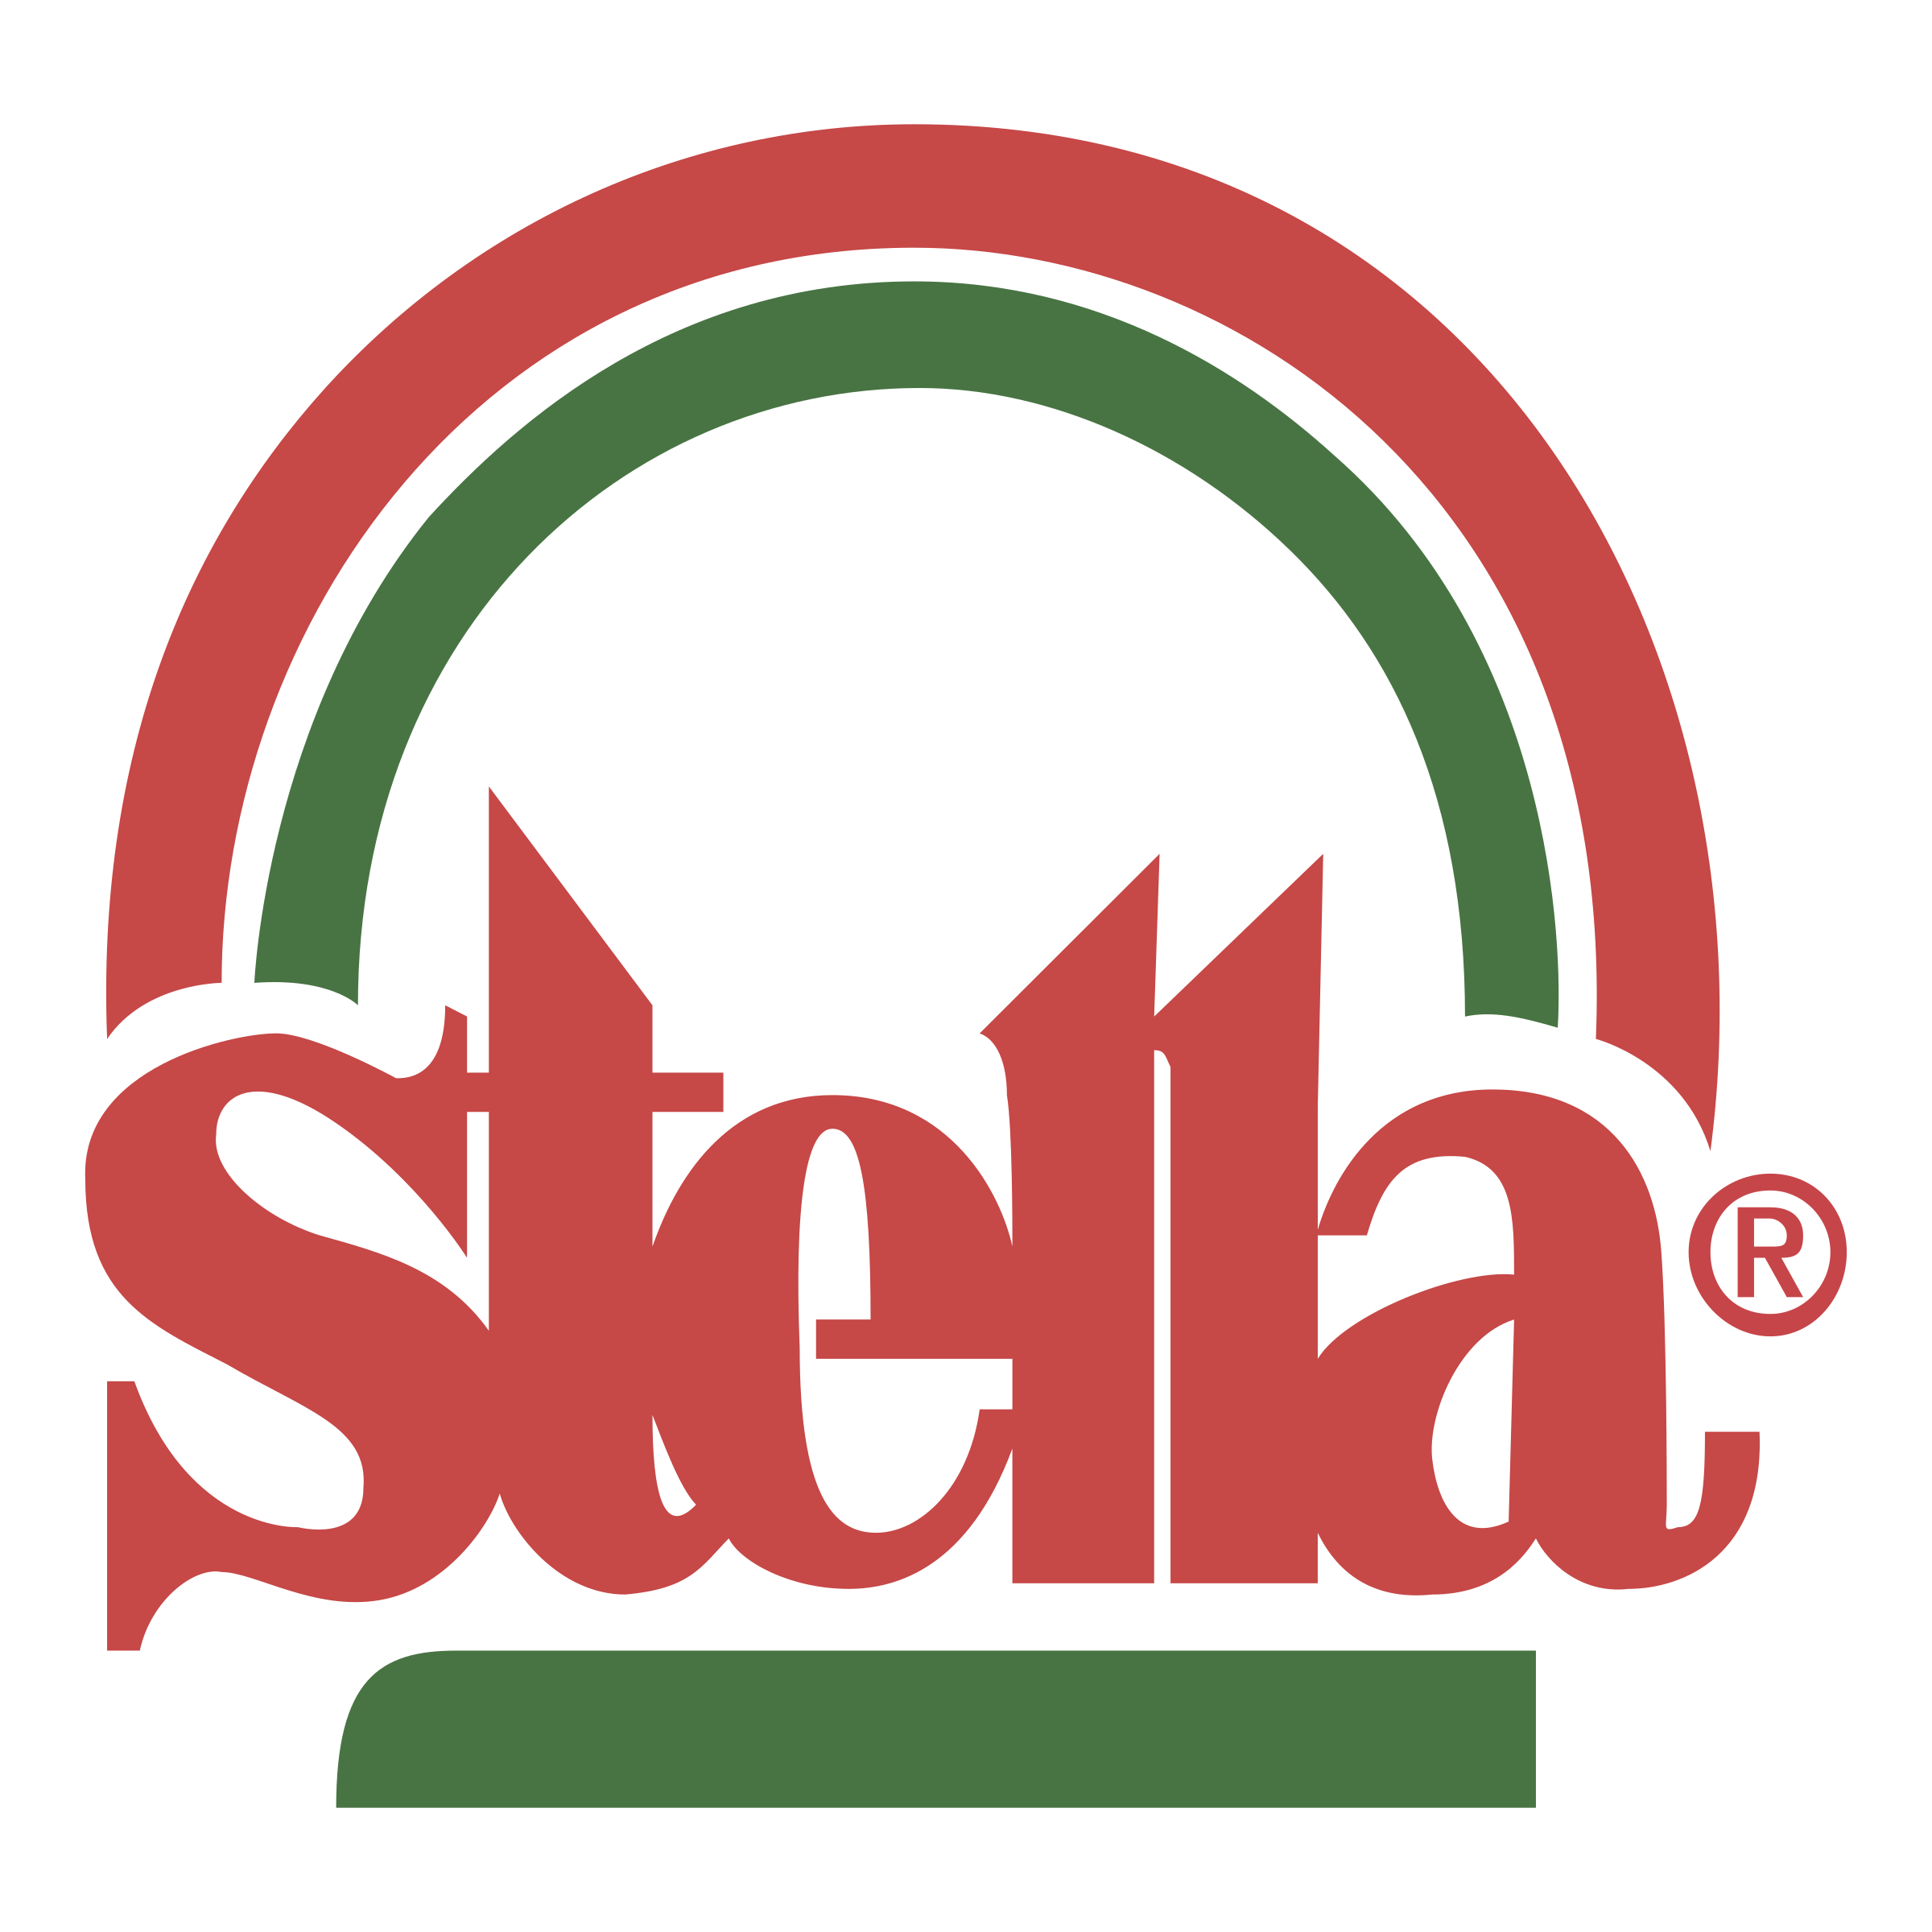 Stella Logo PNG Transparent & SVG Vector.